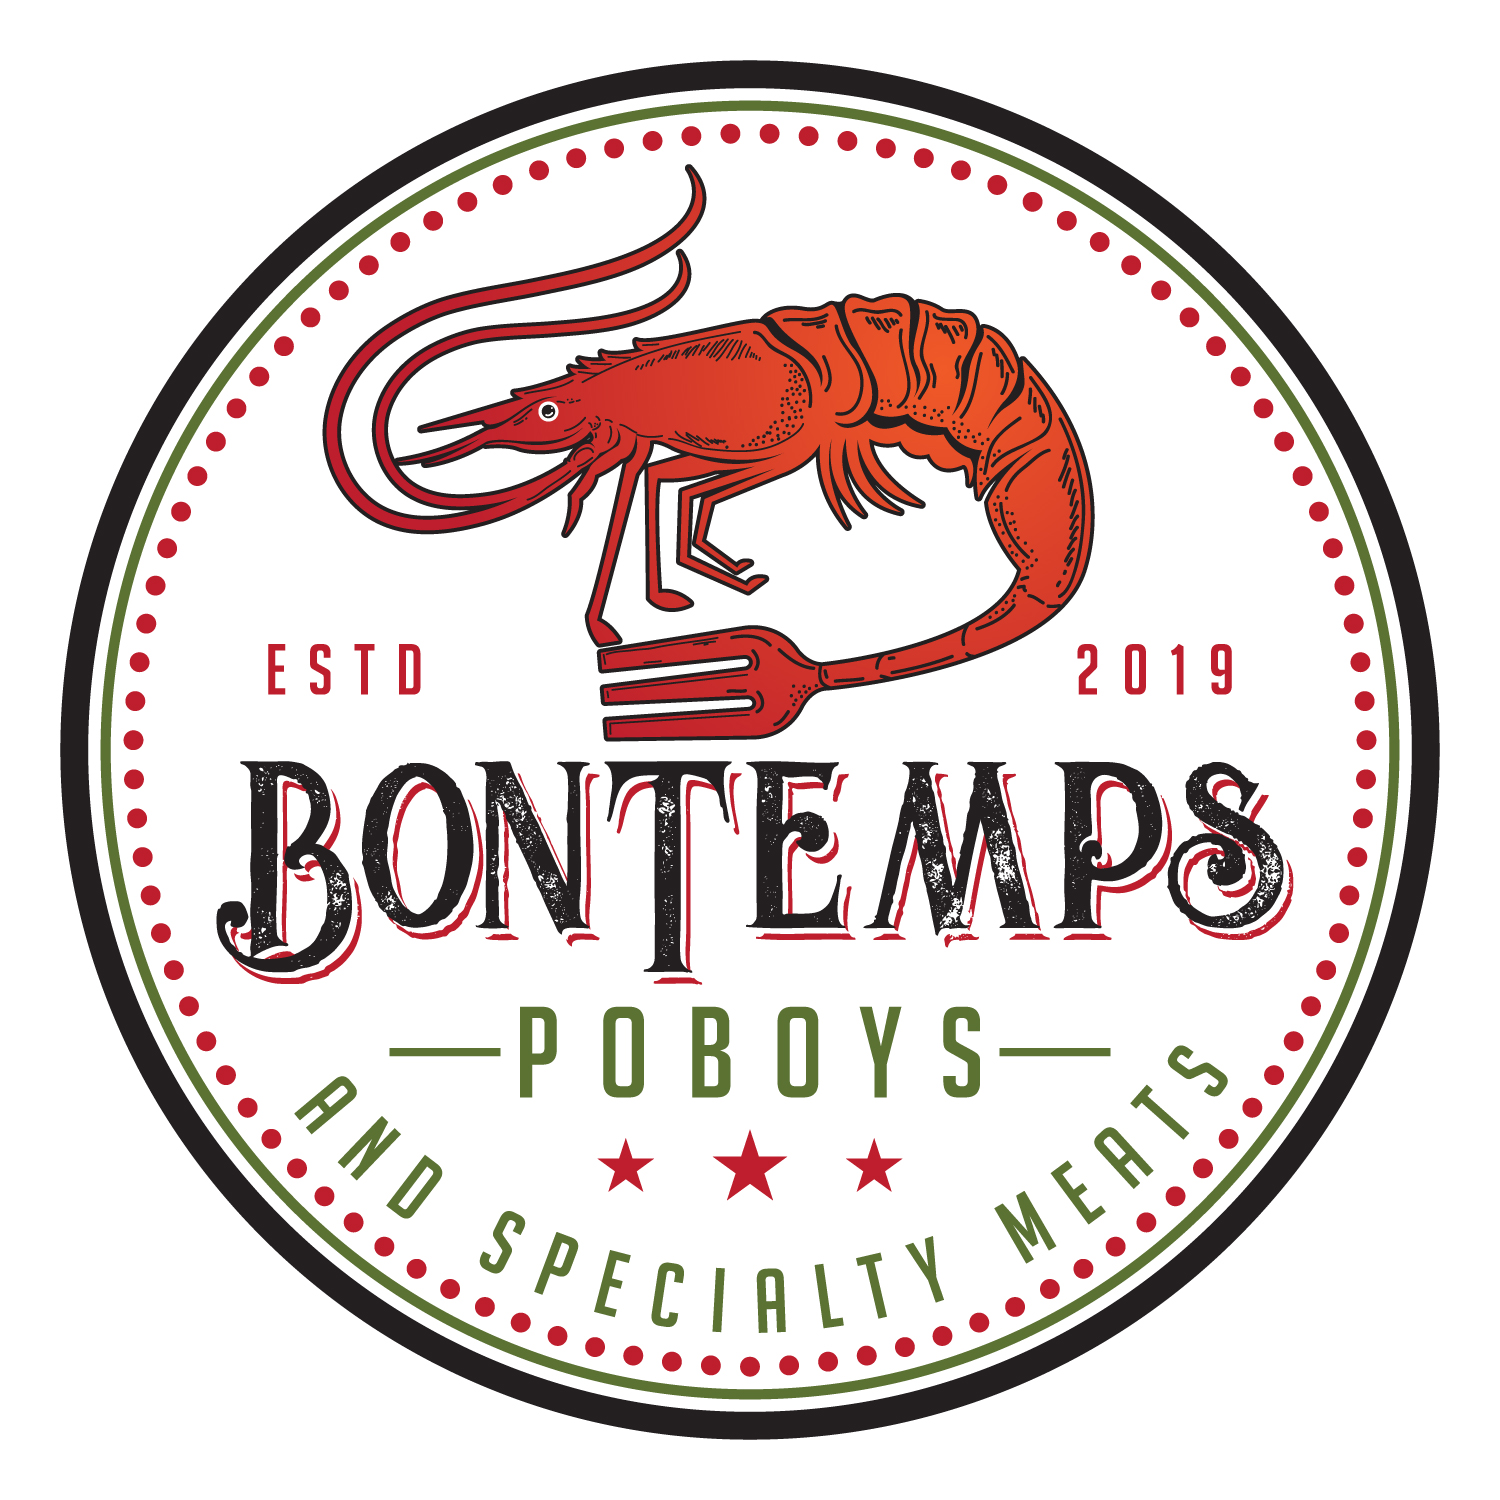 Bon Temps Poboys and Specialty Meats